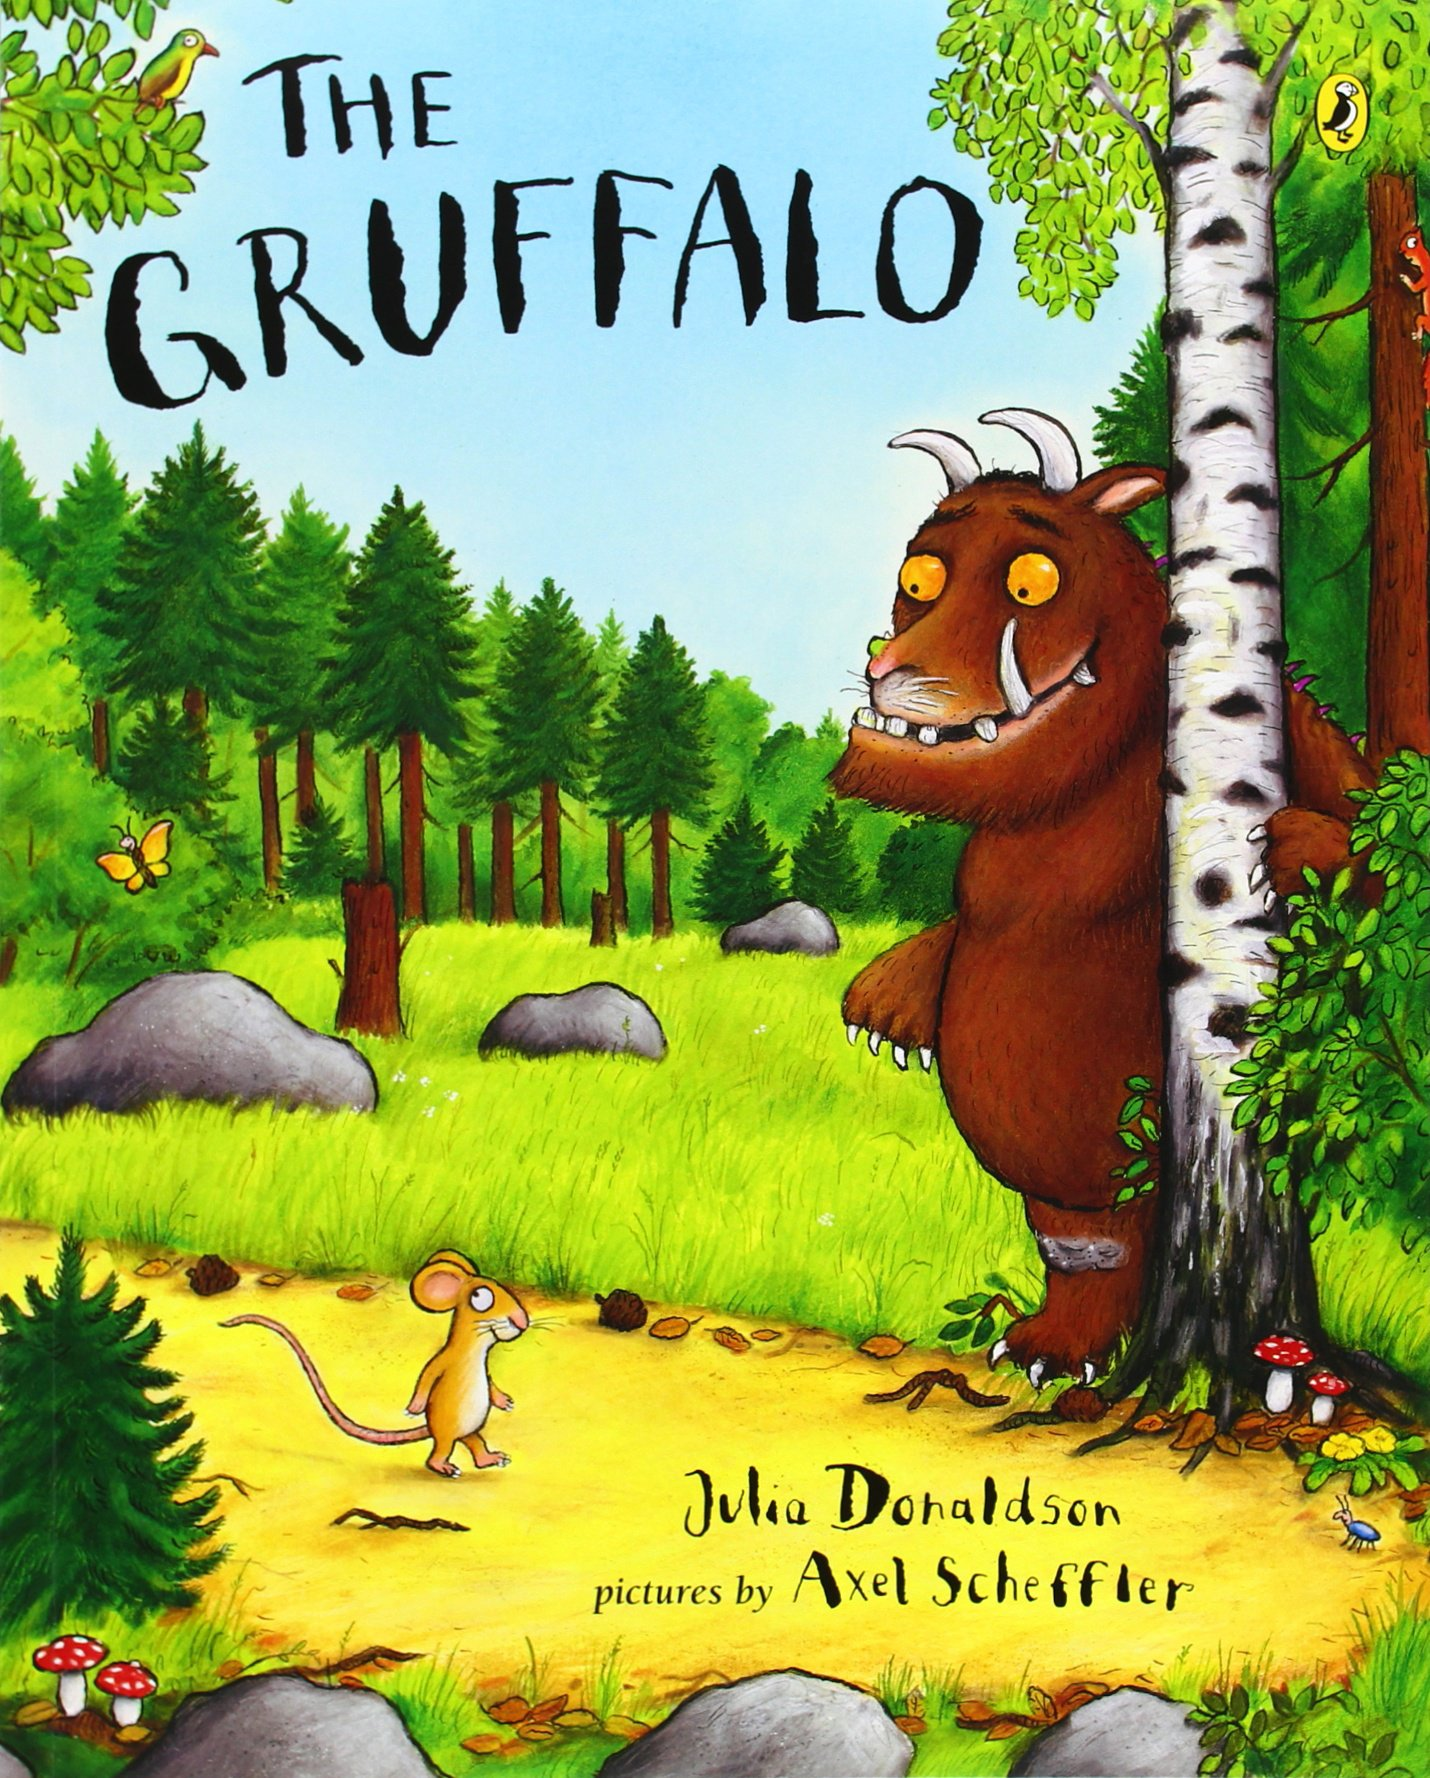 The Gruffalo, by Julia Donaldson, illustrations by Axel Scheffler.                                                                                                                            A clever mouse invents a fearsome creature to protect himself from predators in the woods—but is the Gruffalo really imaginary?                                                                                                                            Buy now: The Gruffalo